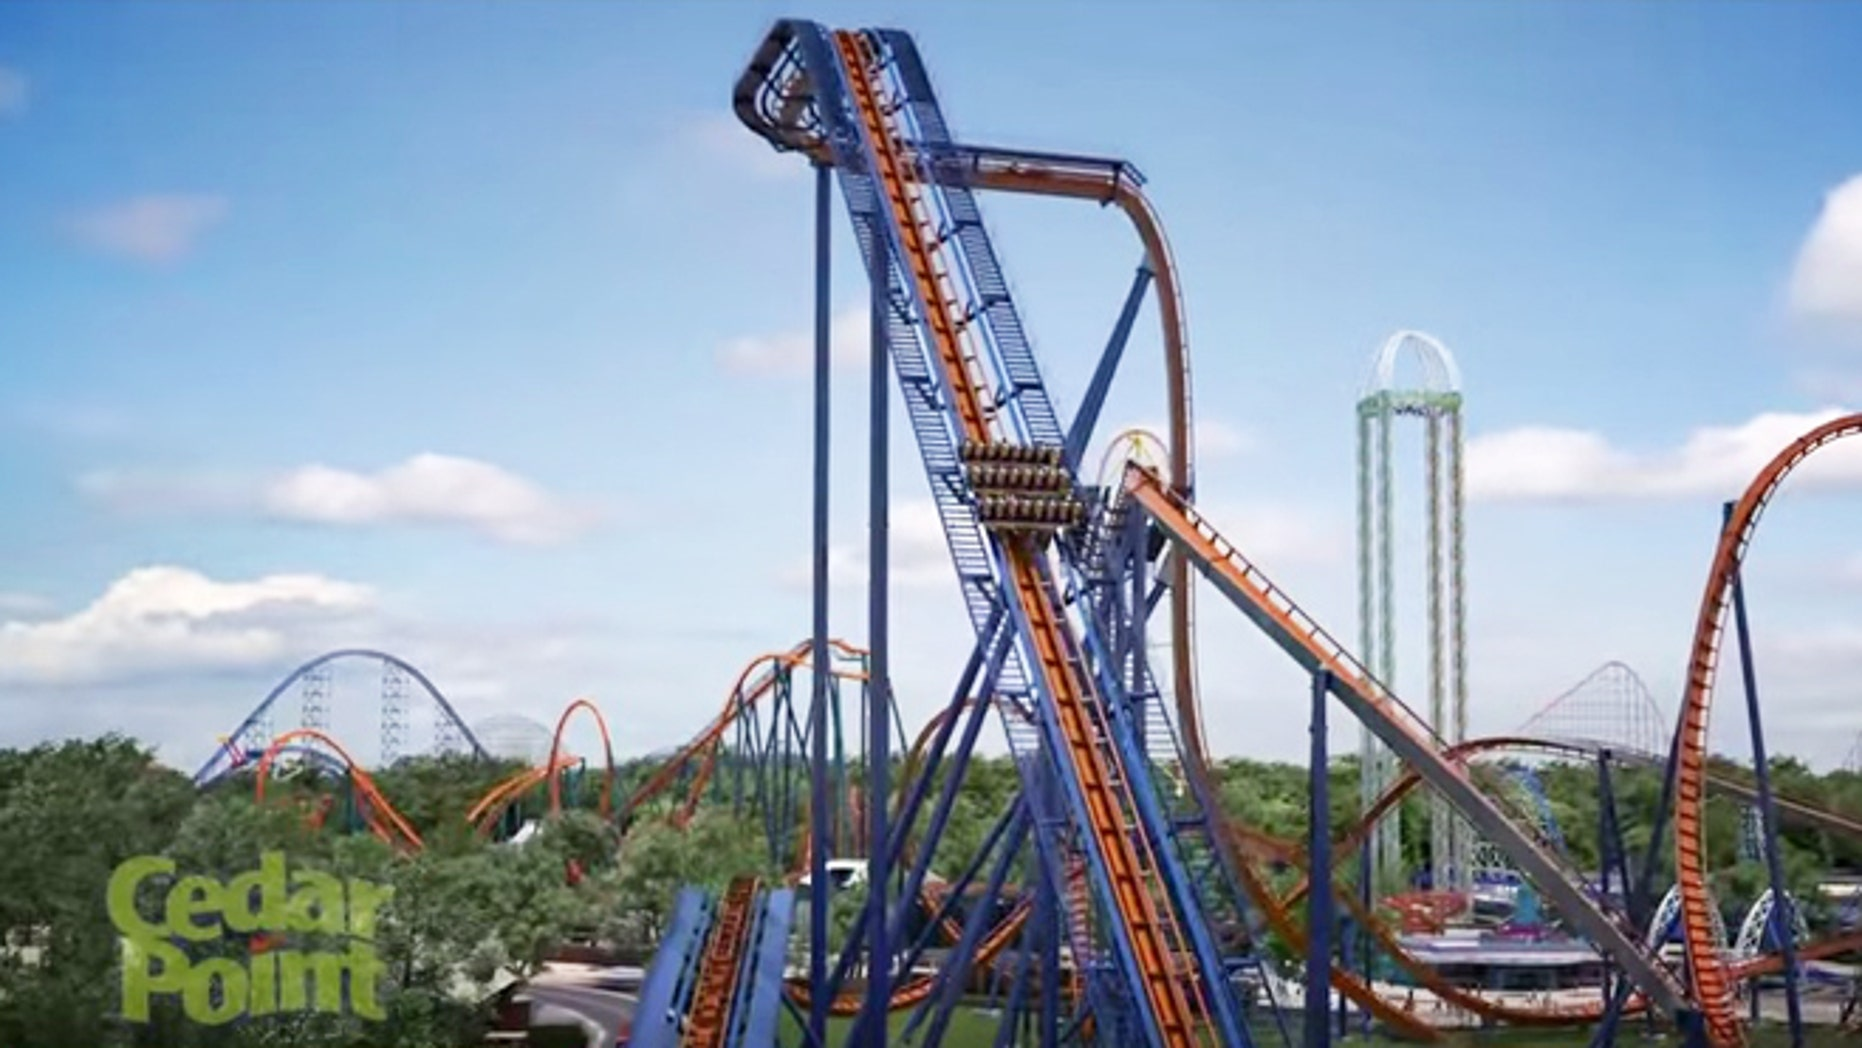 The Valravn dive coaster is set to break 10 records for Cedar Point.